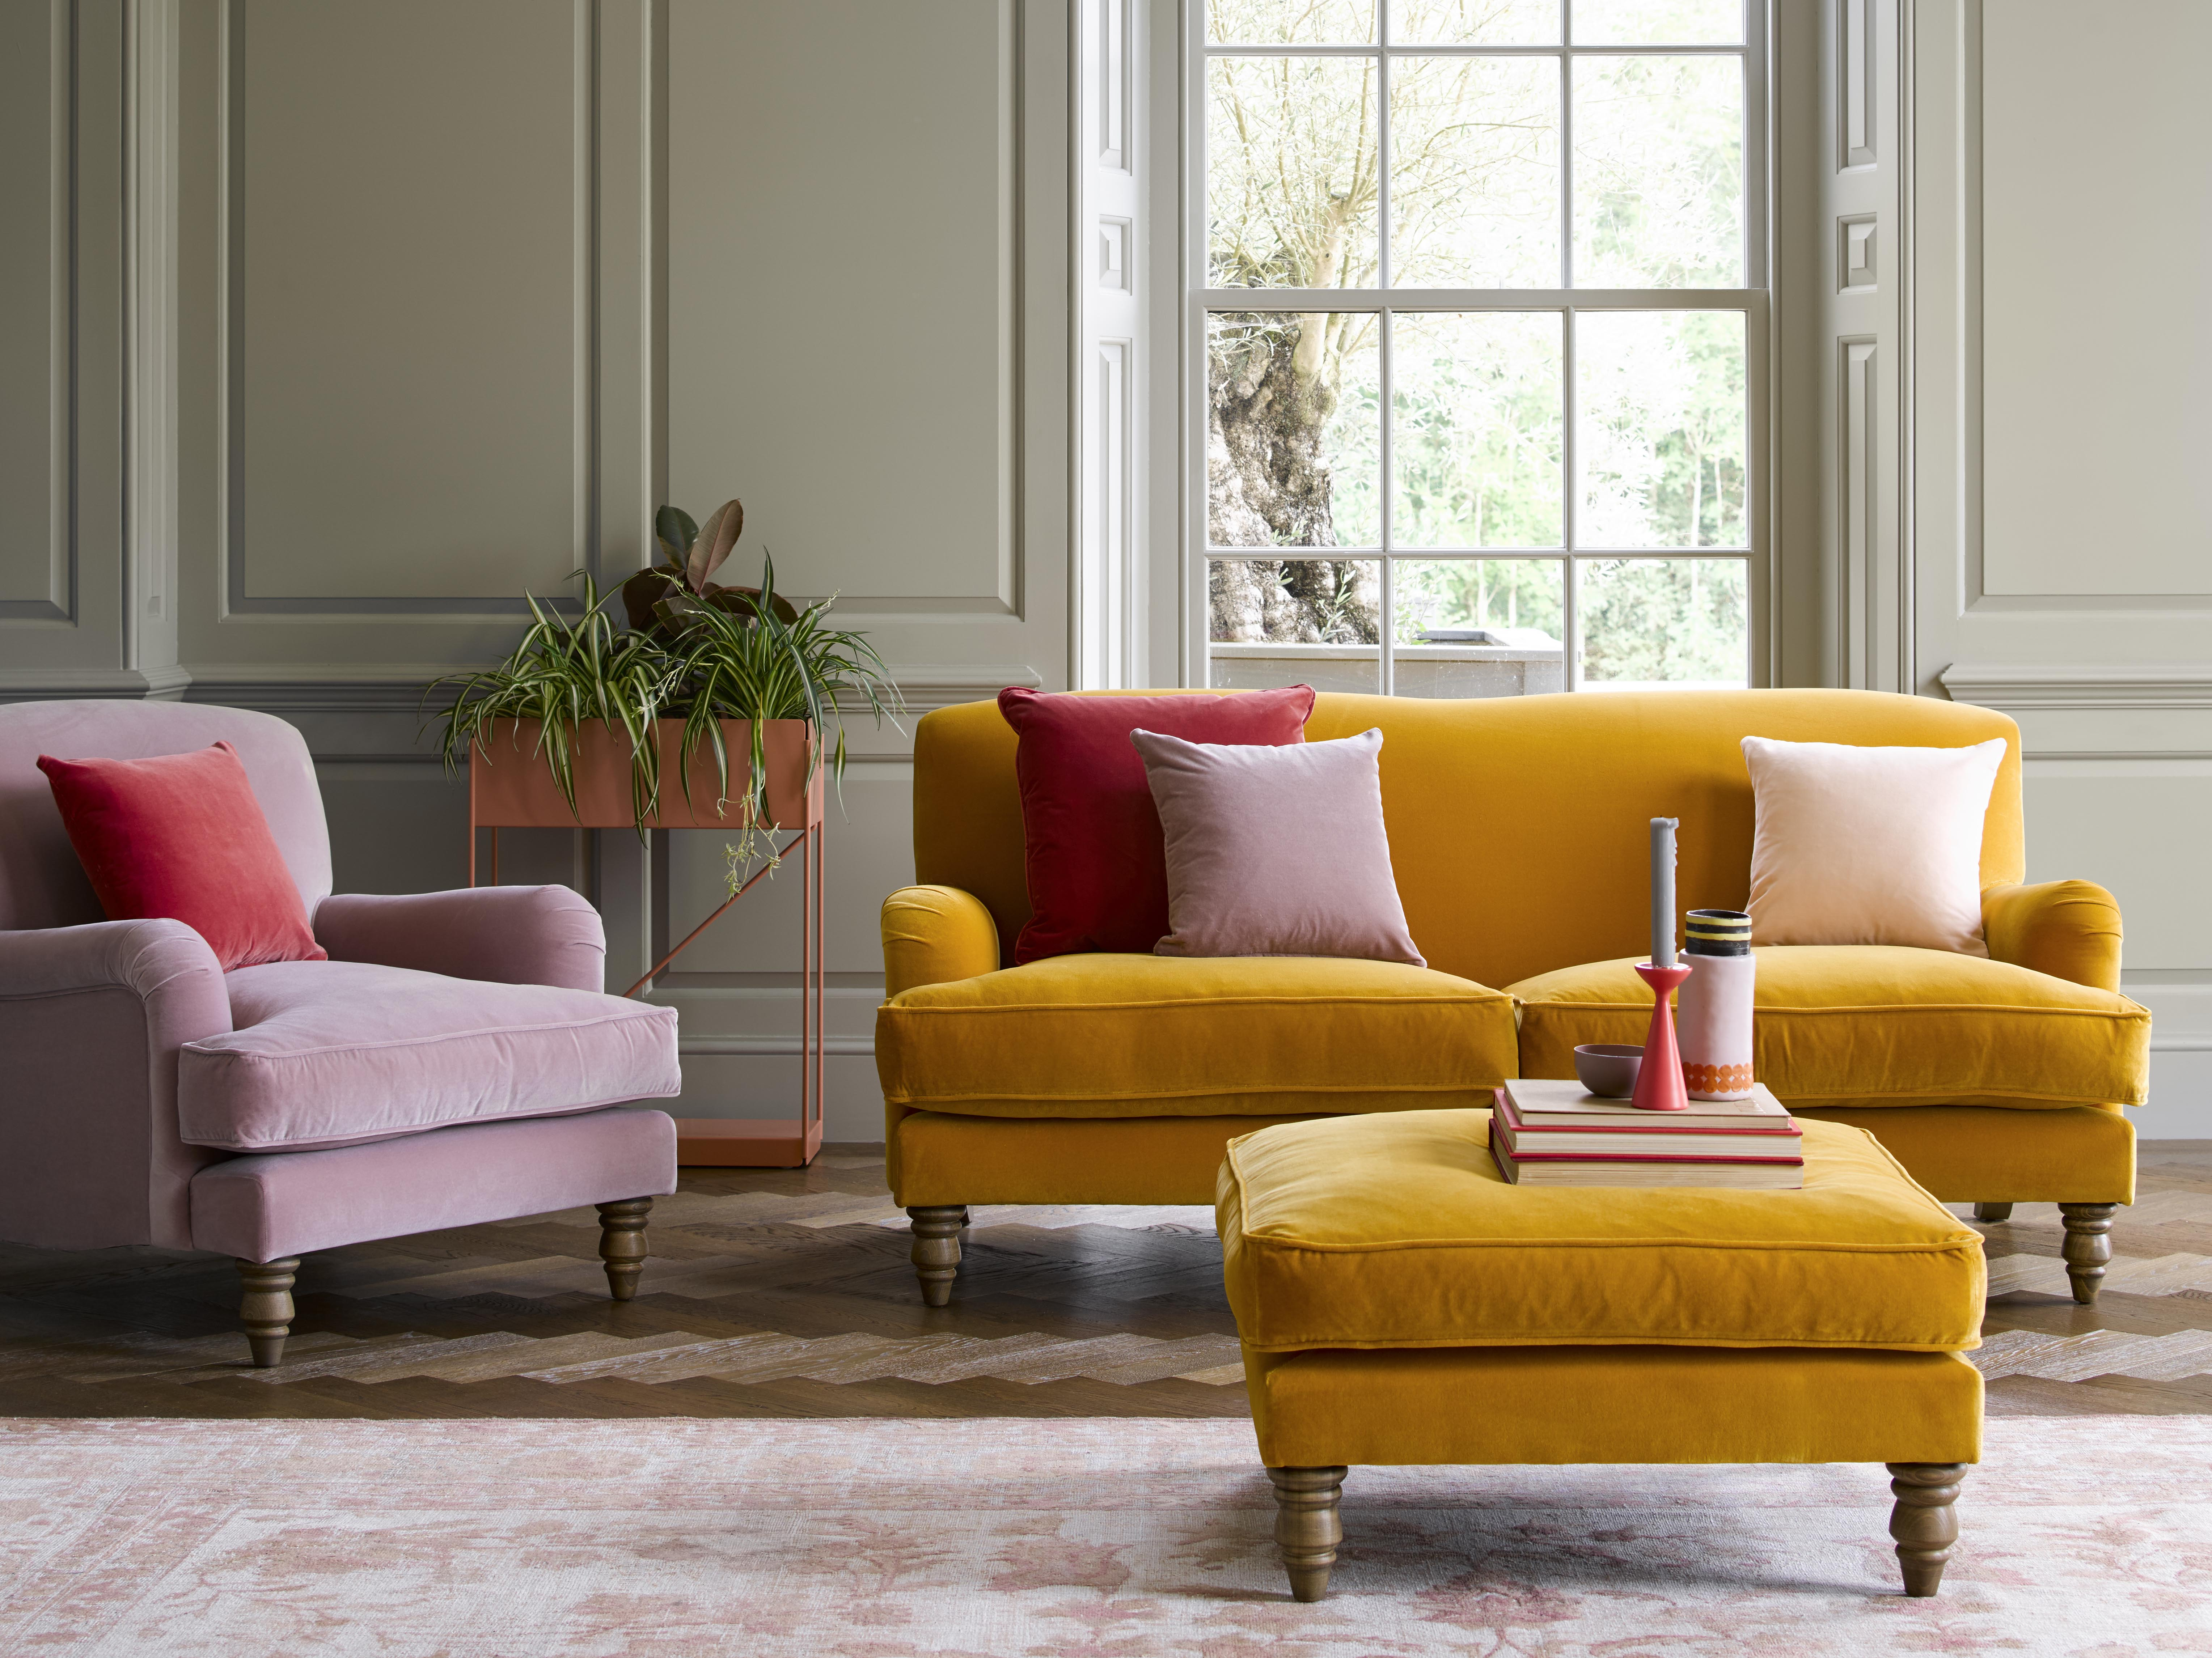 pink armchair, yellow sofa and footstool